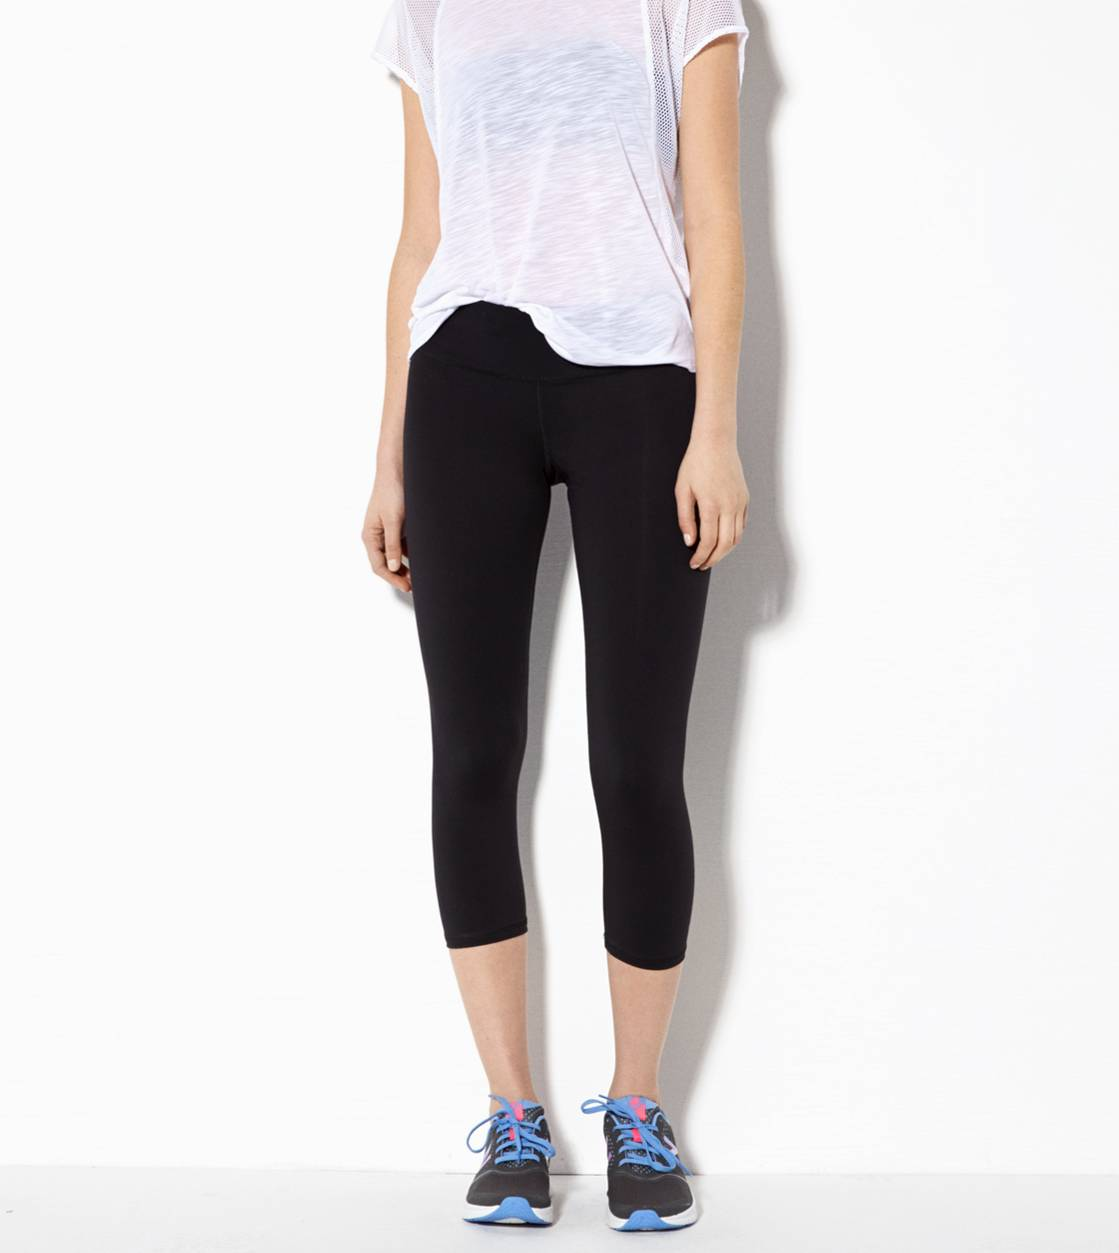 Black AEO Performance Crop Pant